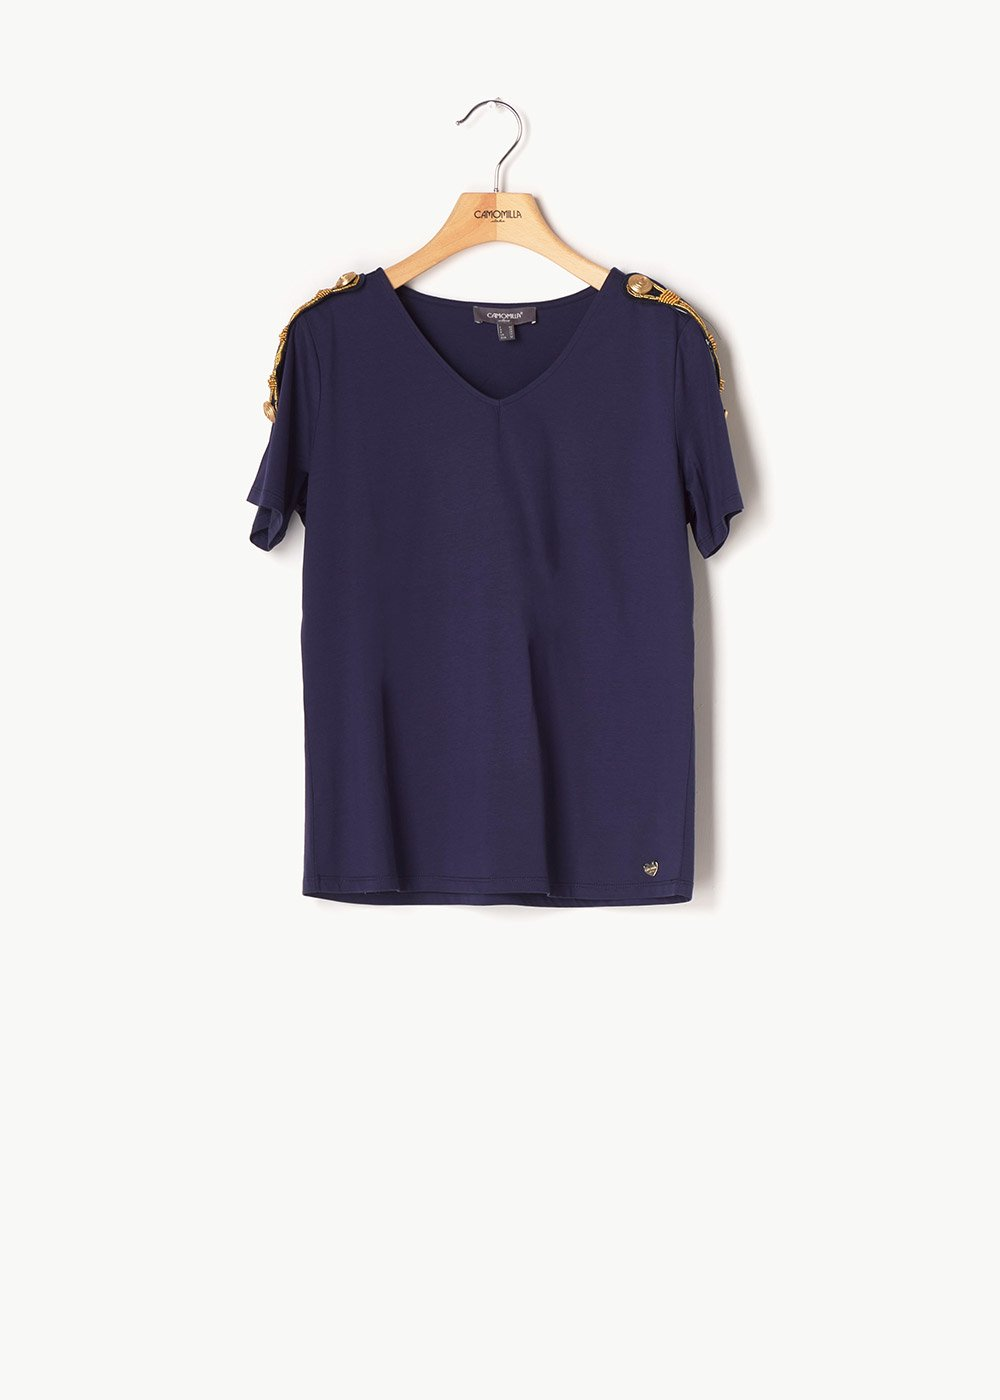 Shanan T-shirt with gold details - Medium Blue - Woman